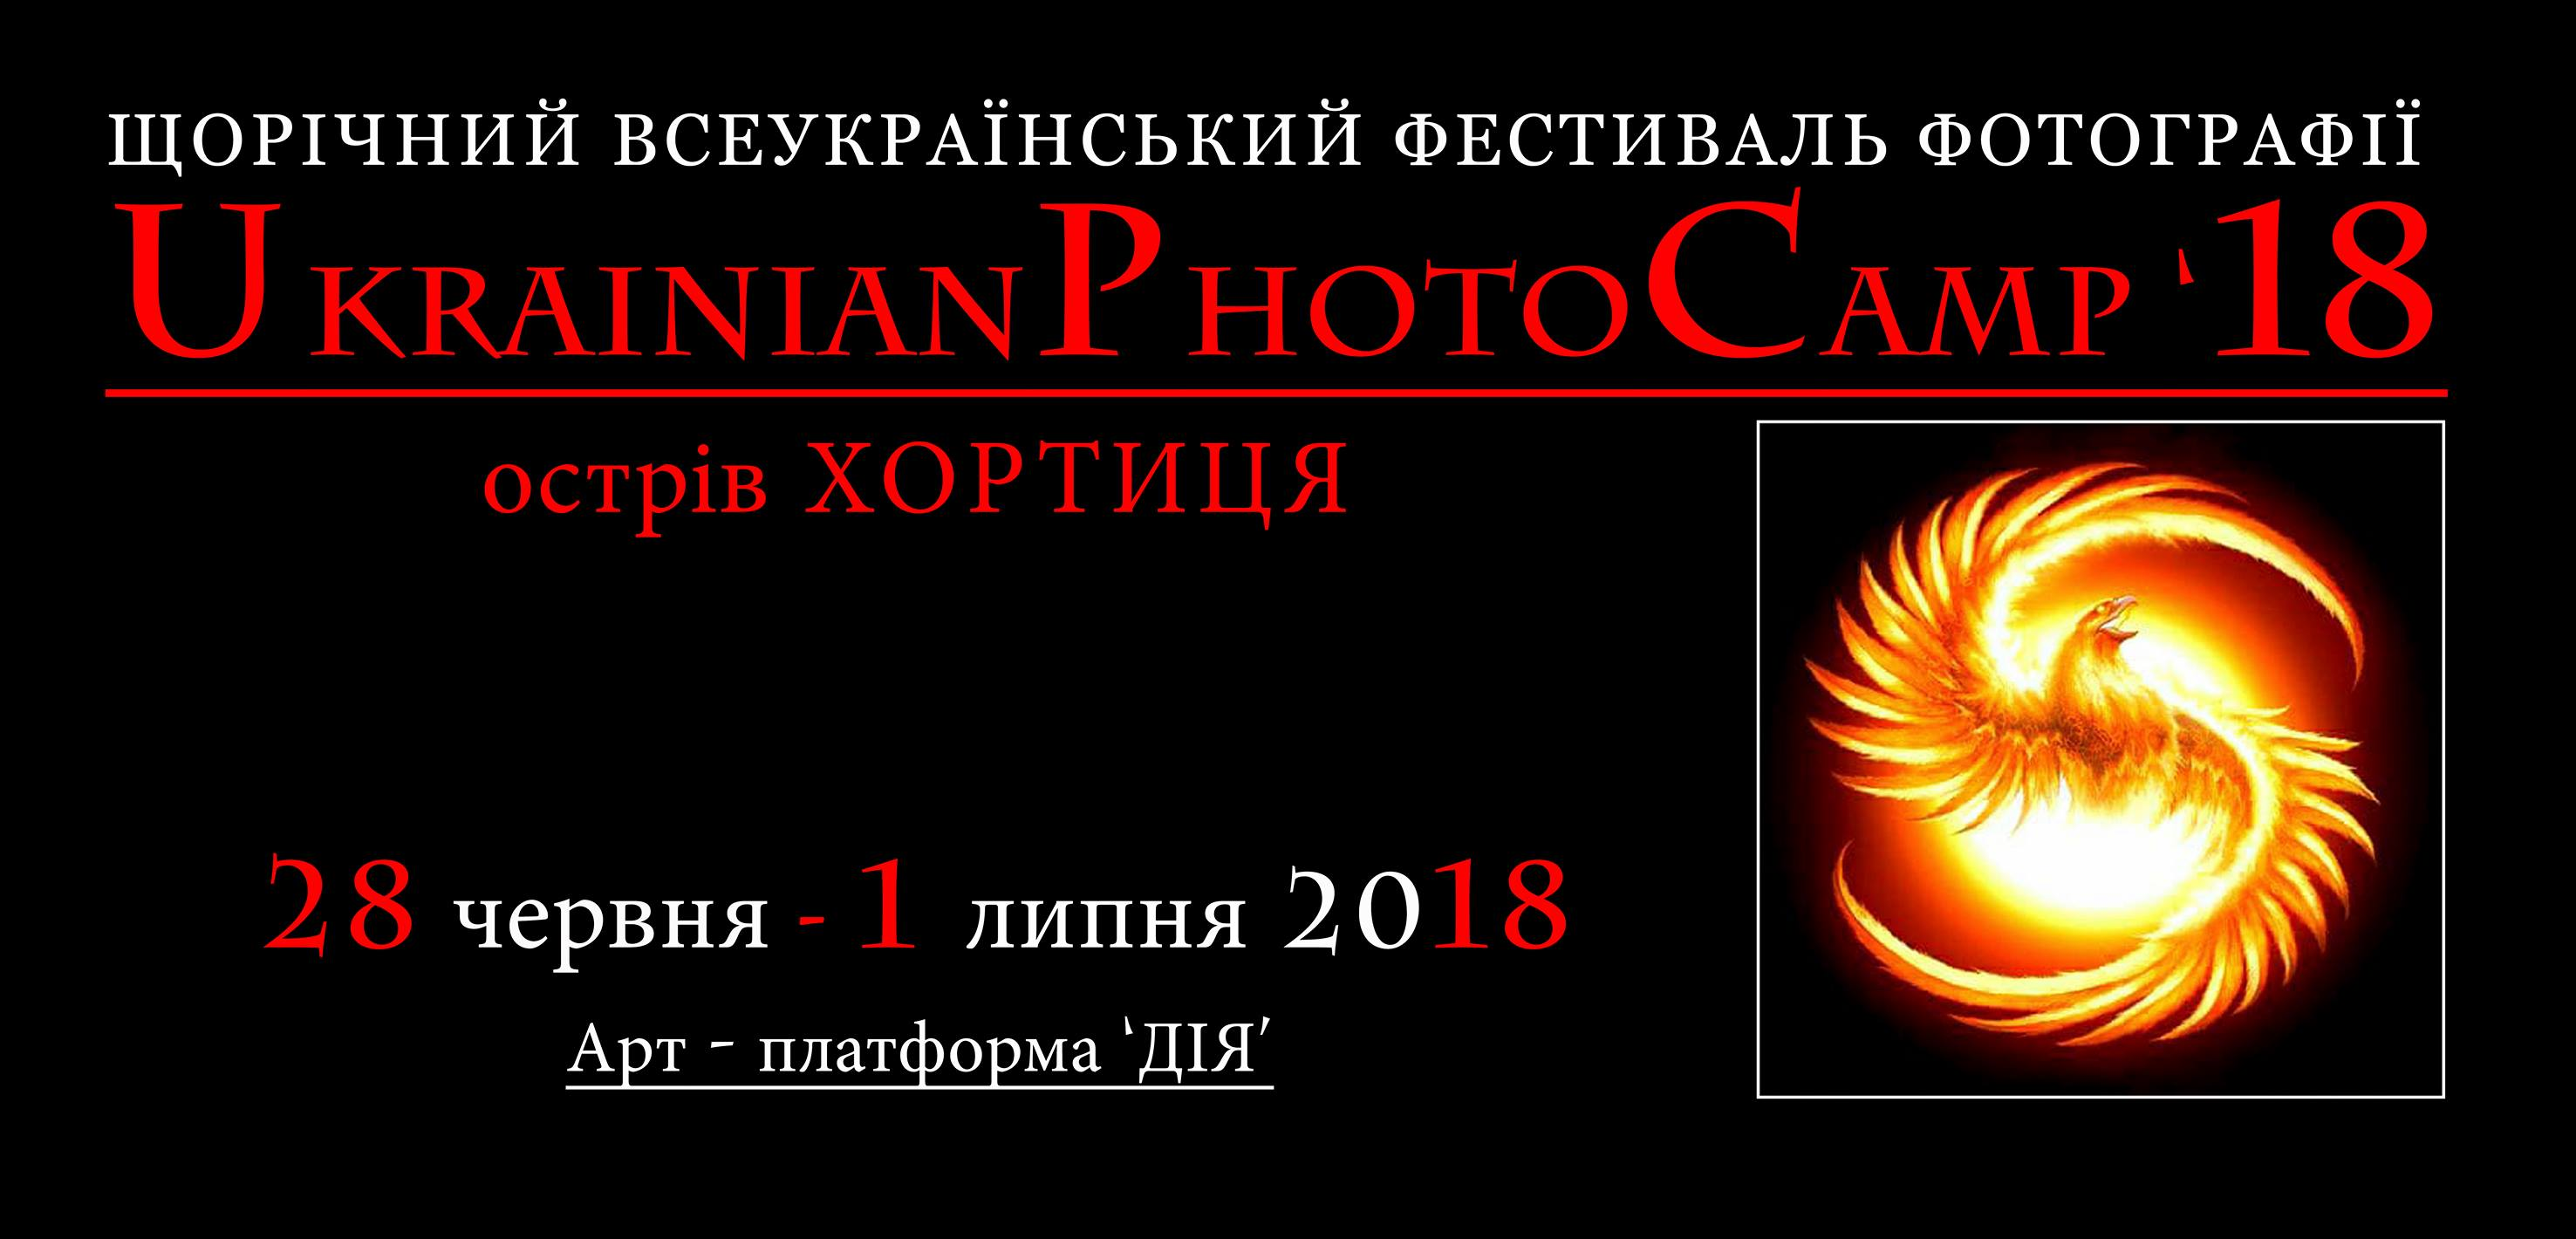 Ukrainian Photo Camp'18